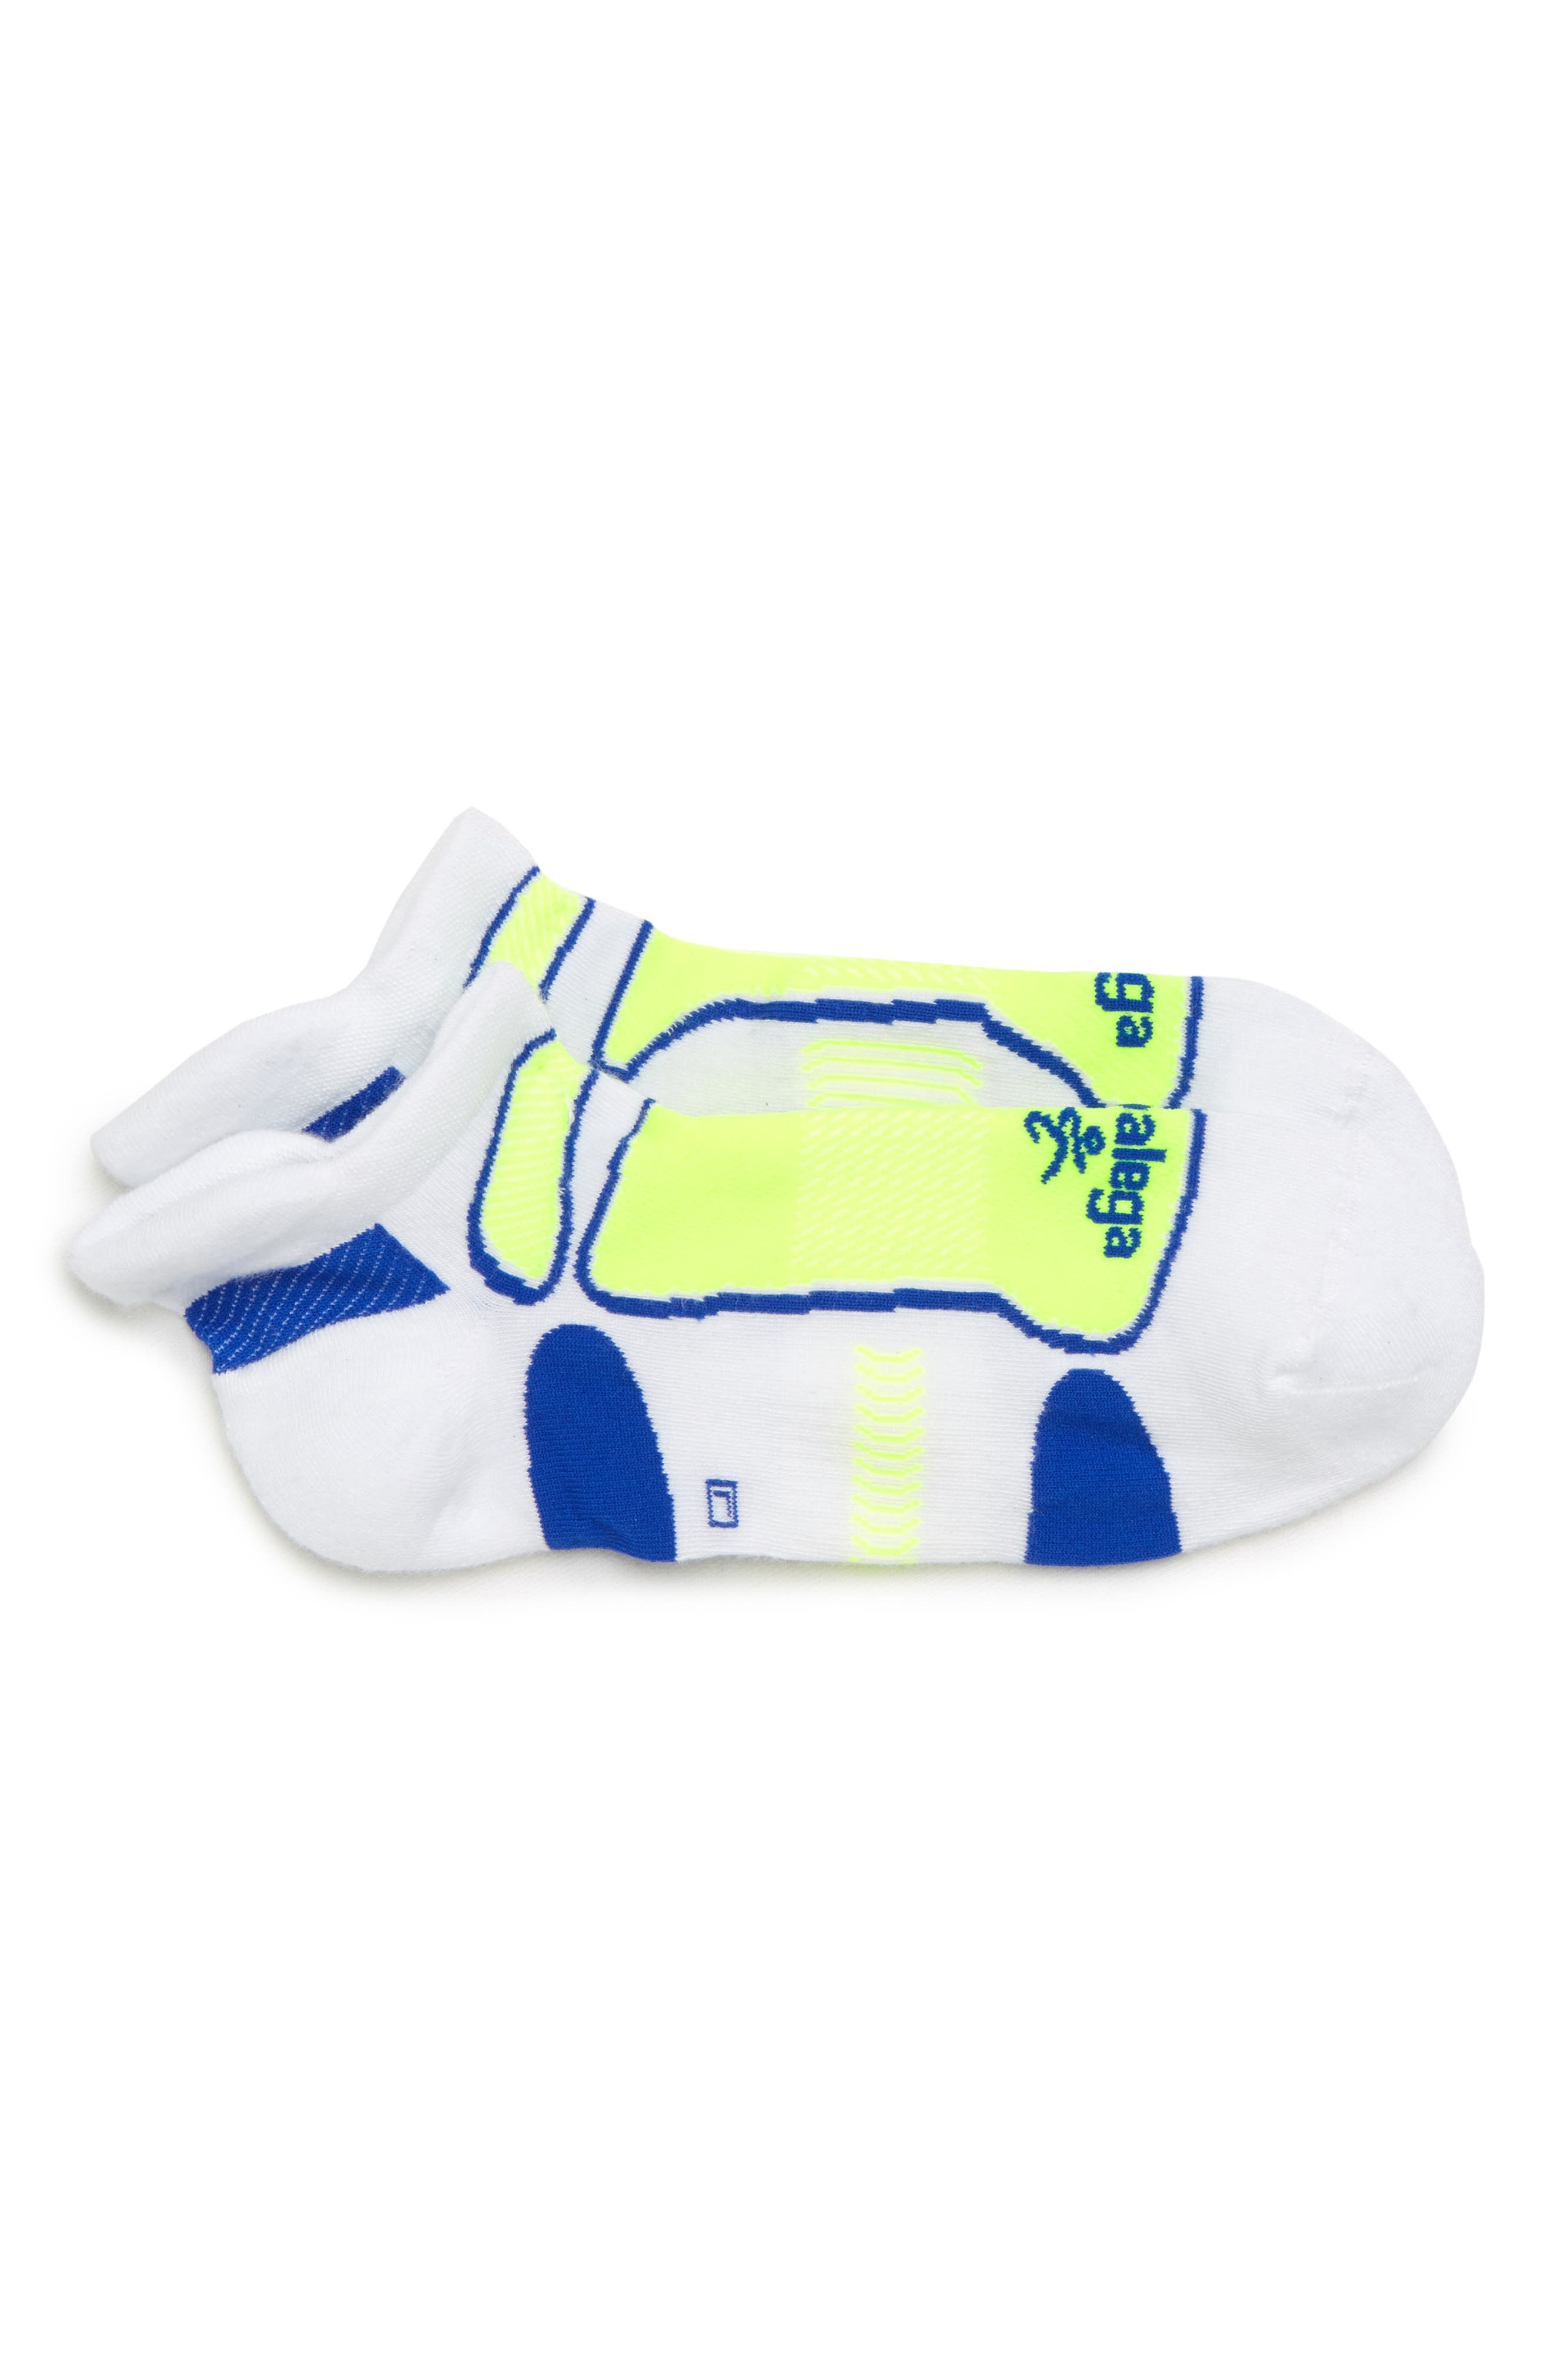 Ultra Light Socks,                         Main,                         color, WHITE/ NEON YELLOW/ ROYAL